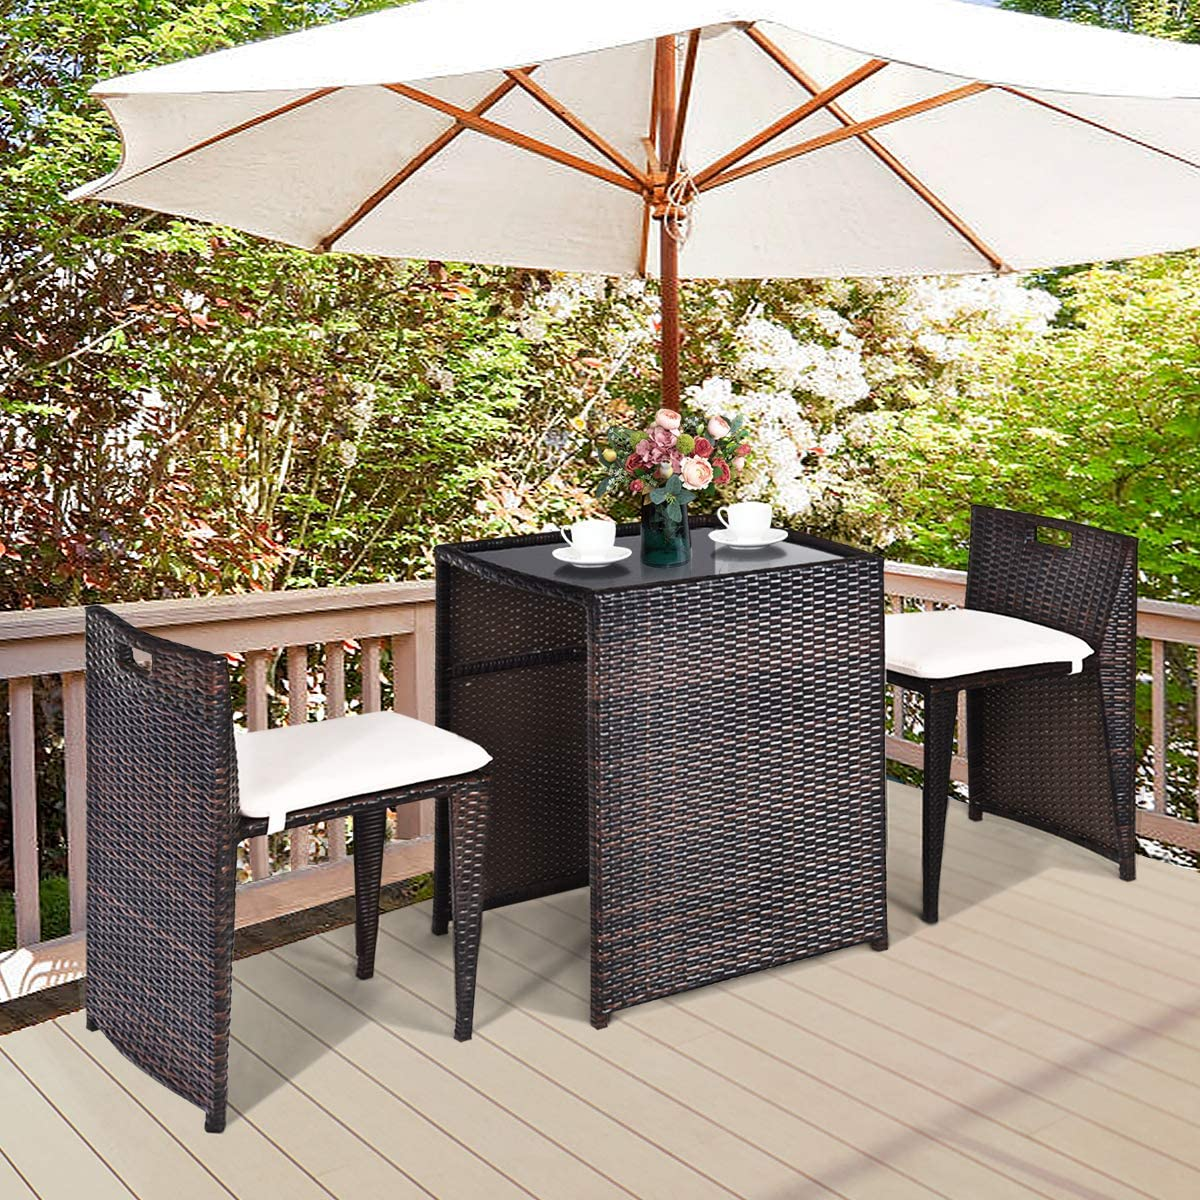 Best Bistro set for a Balcony